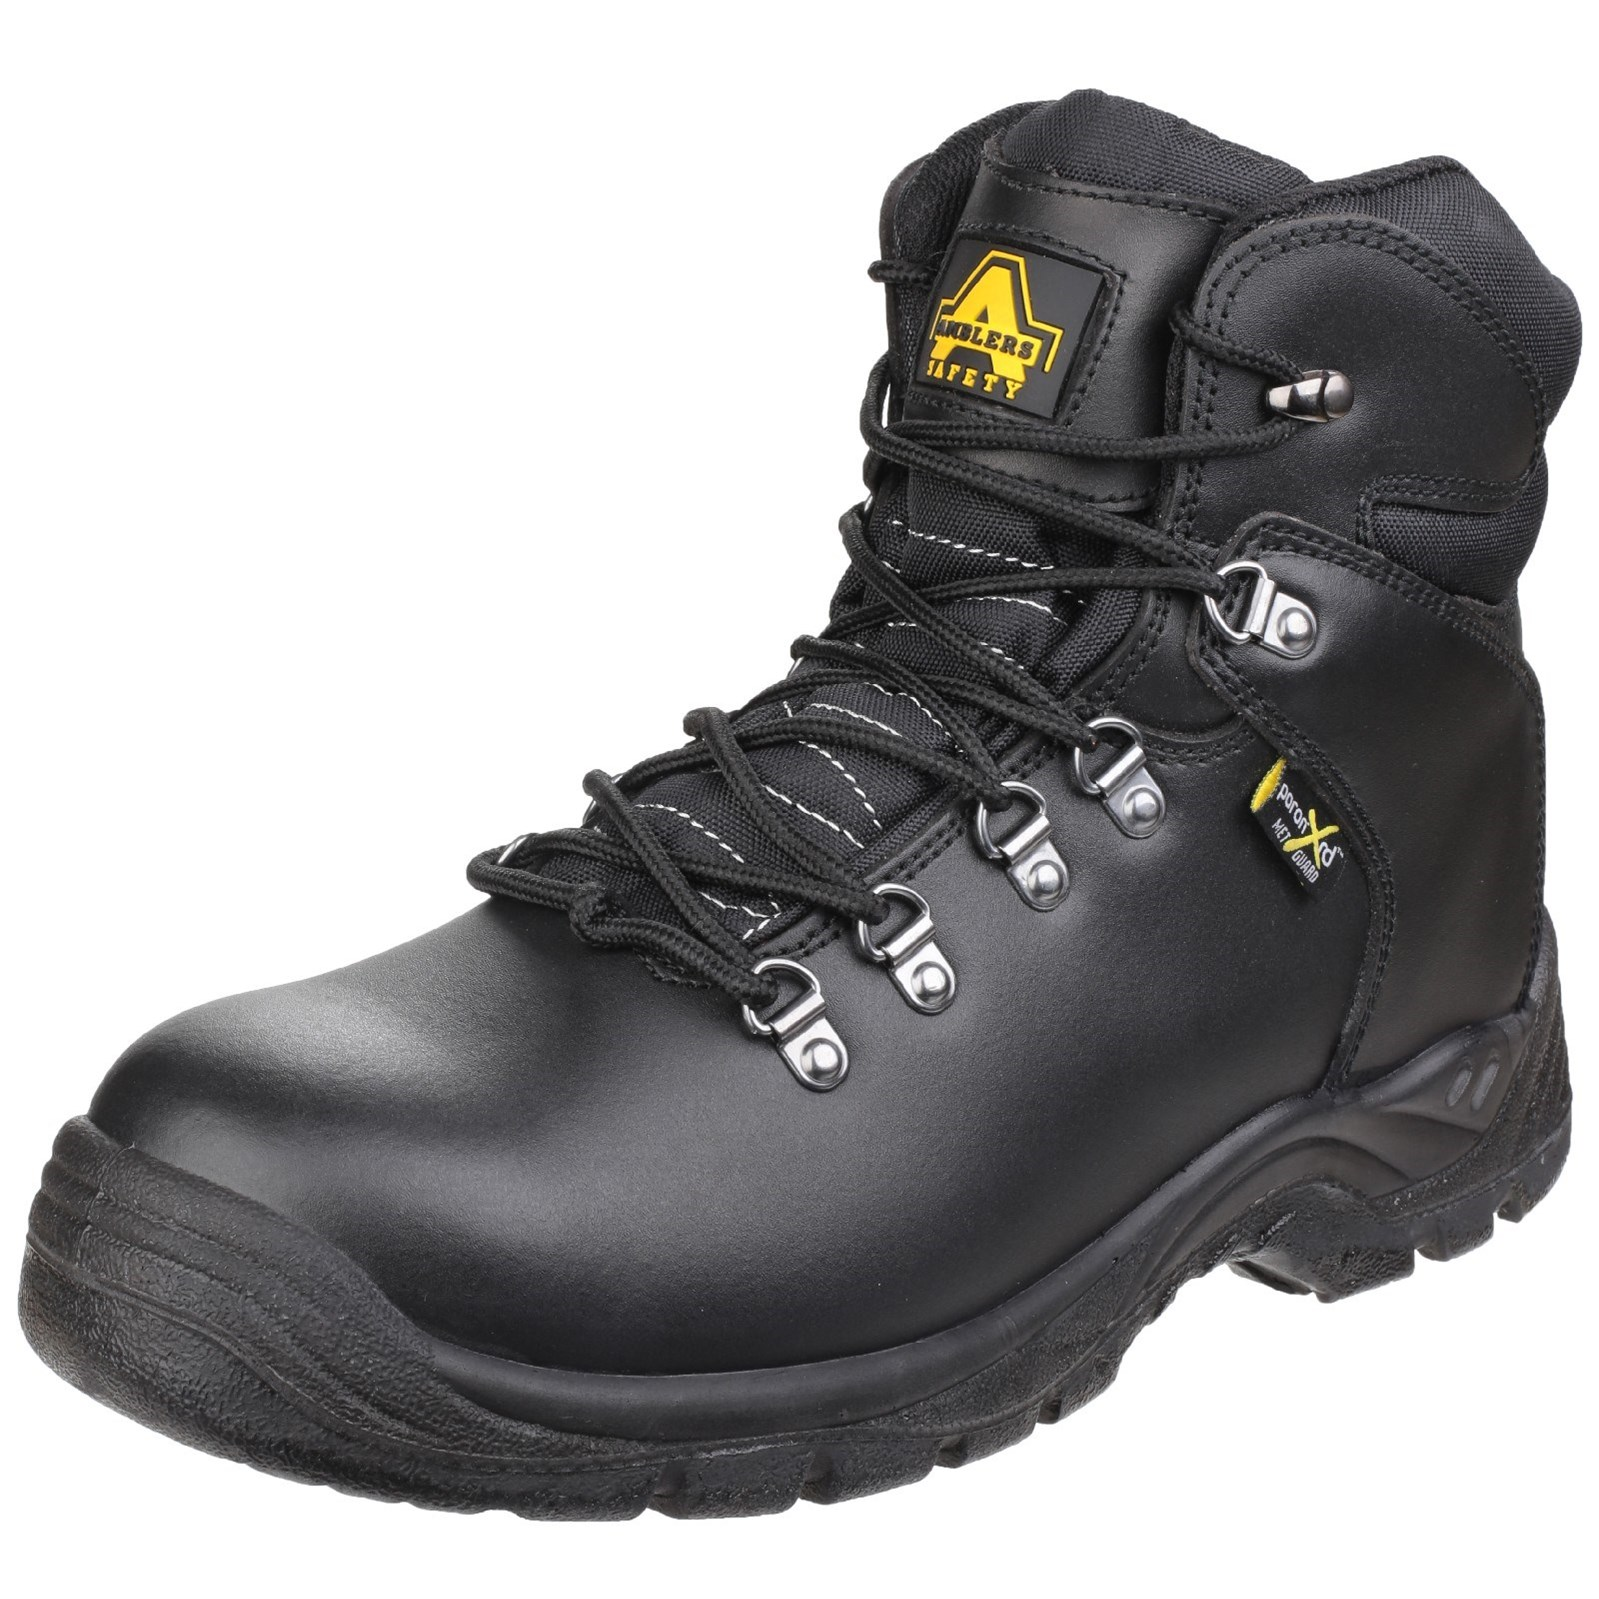 Amblers-Safety-AS335-Mens-Internal-Metatarsal-Safety-Boots-FS4630 thumbnail 14